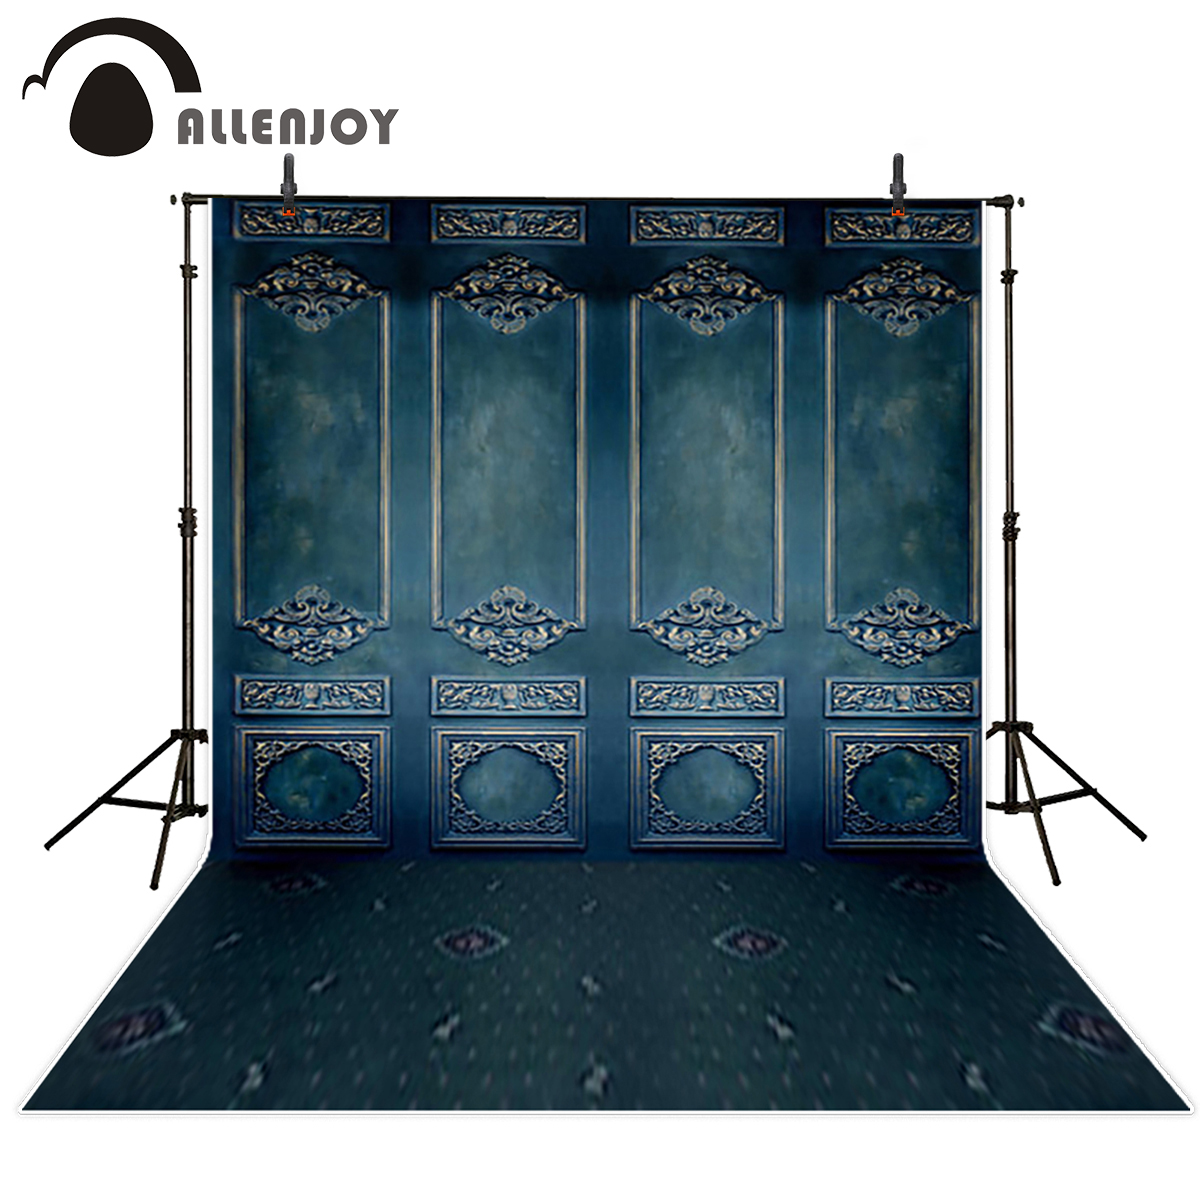 Allenjoy moody blue wood wall vintage photography backdrop carving pattern classic background photo studio photoshoot props